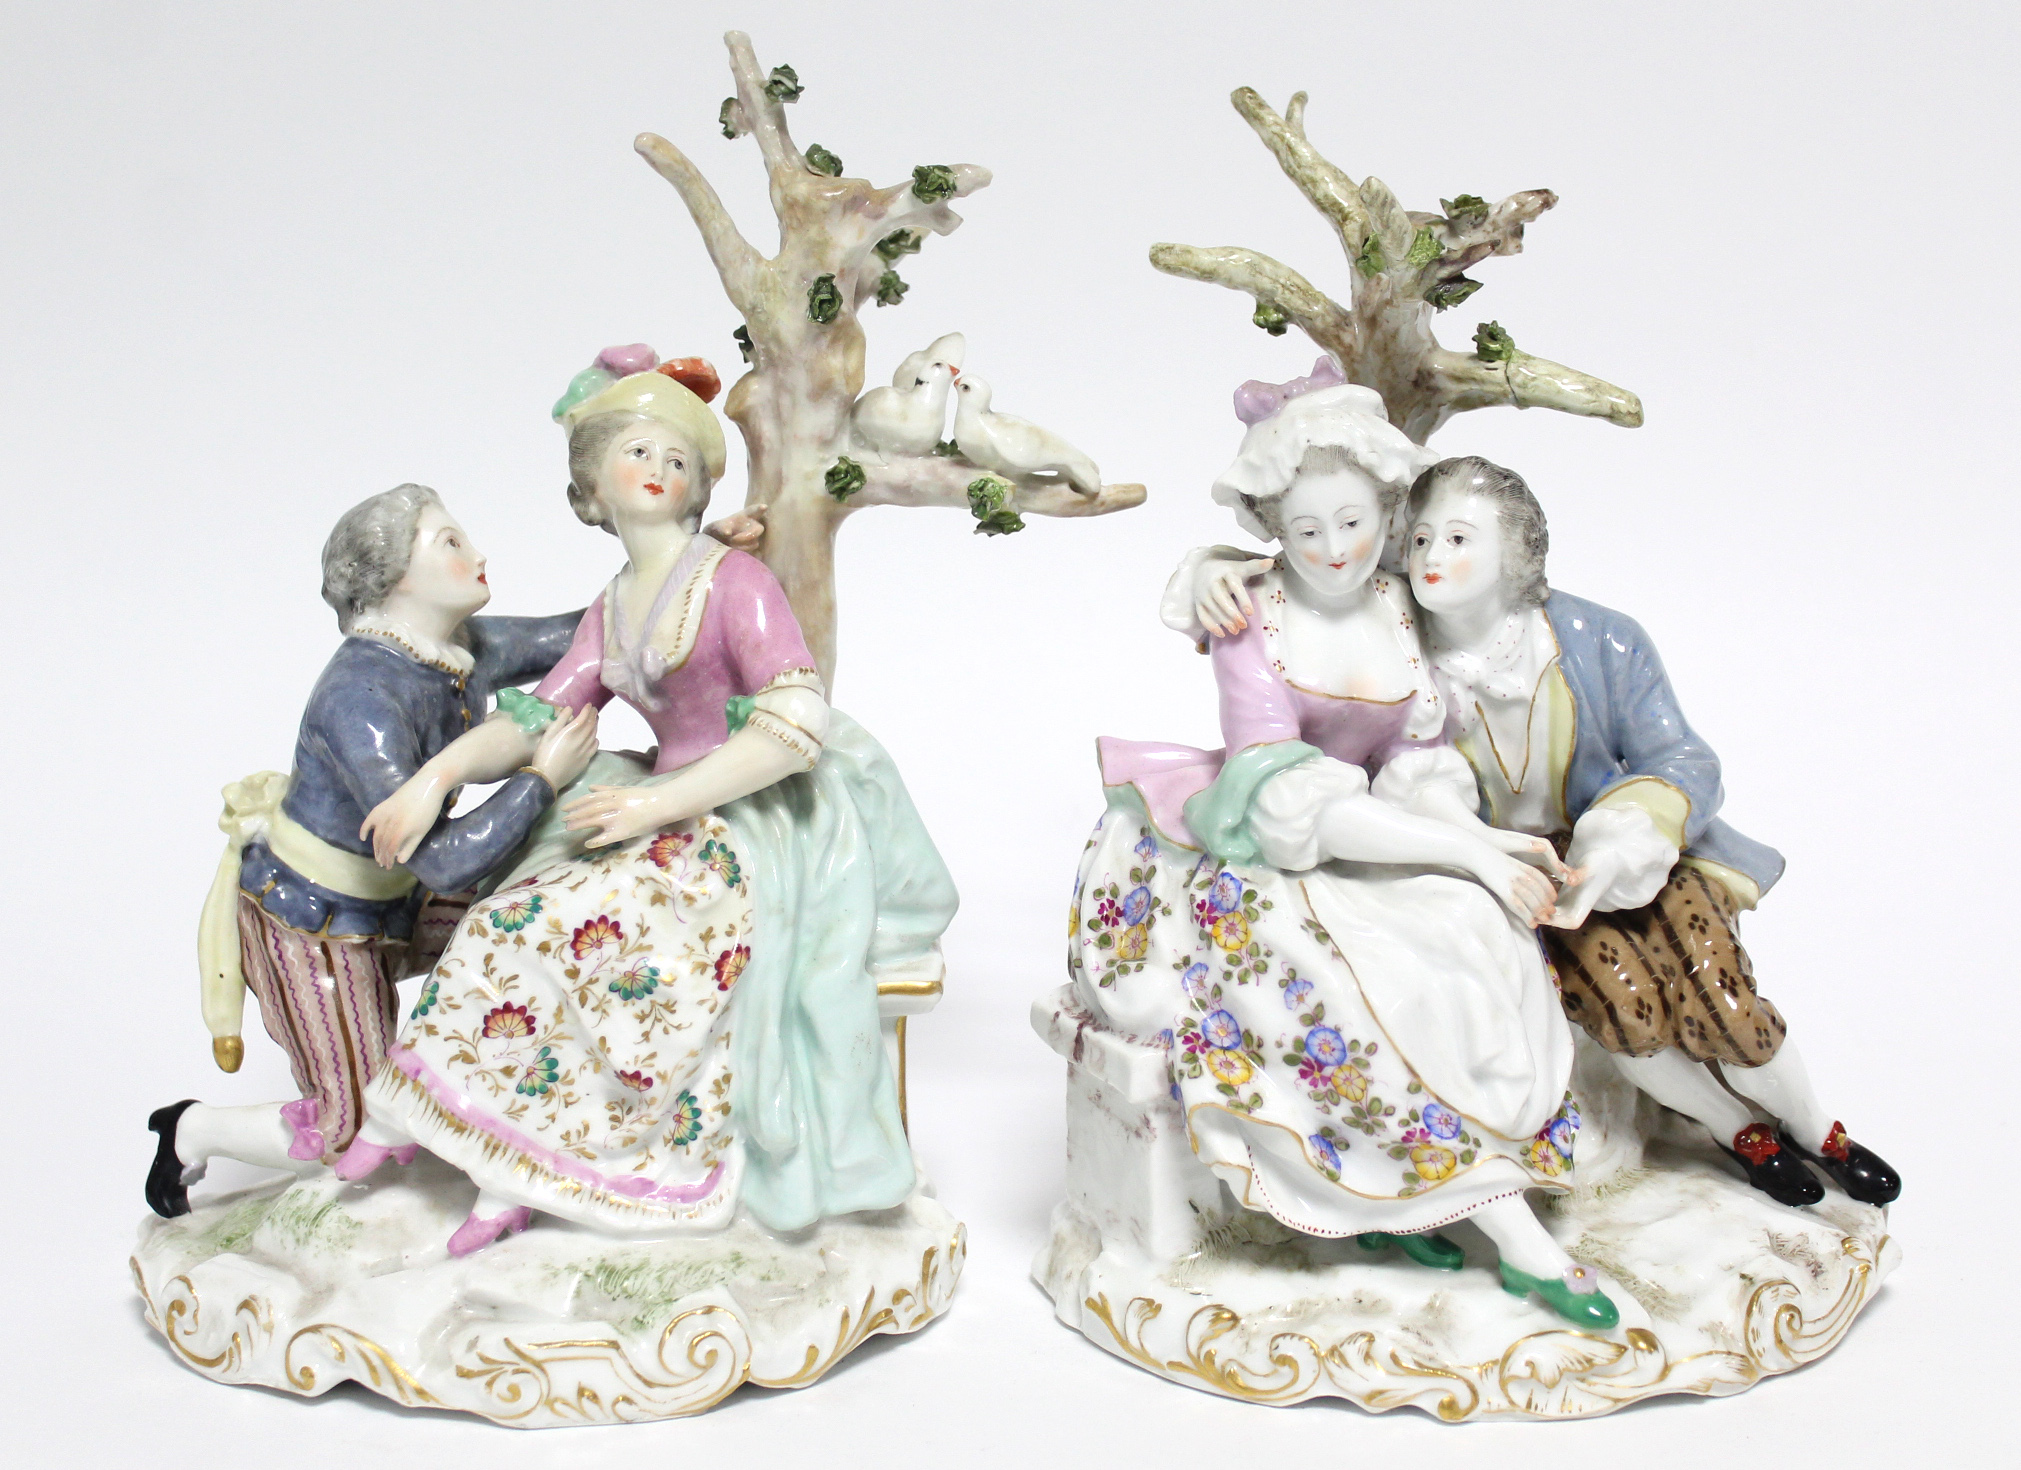 A pair of Samson porcelain romantic male & female figure groups, each dressed in colourful 18th